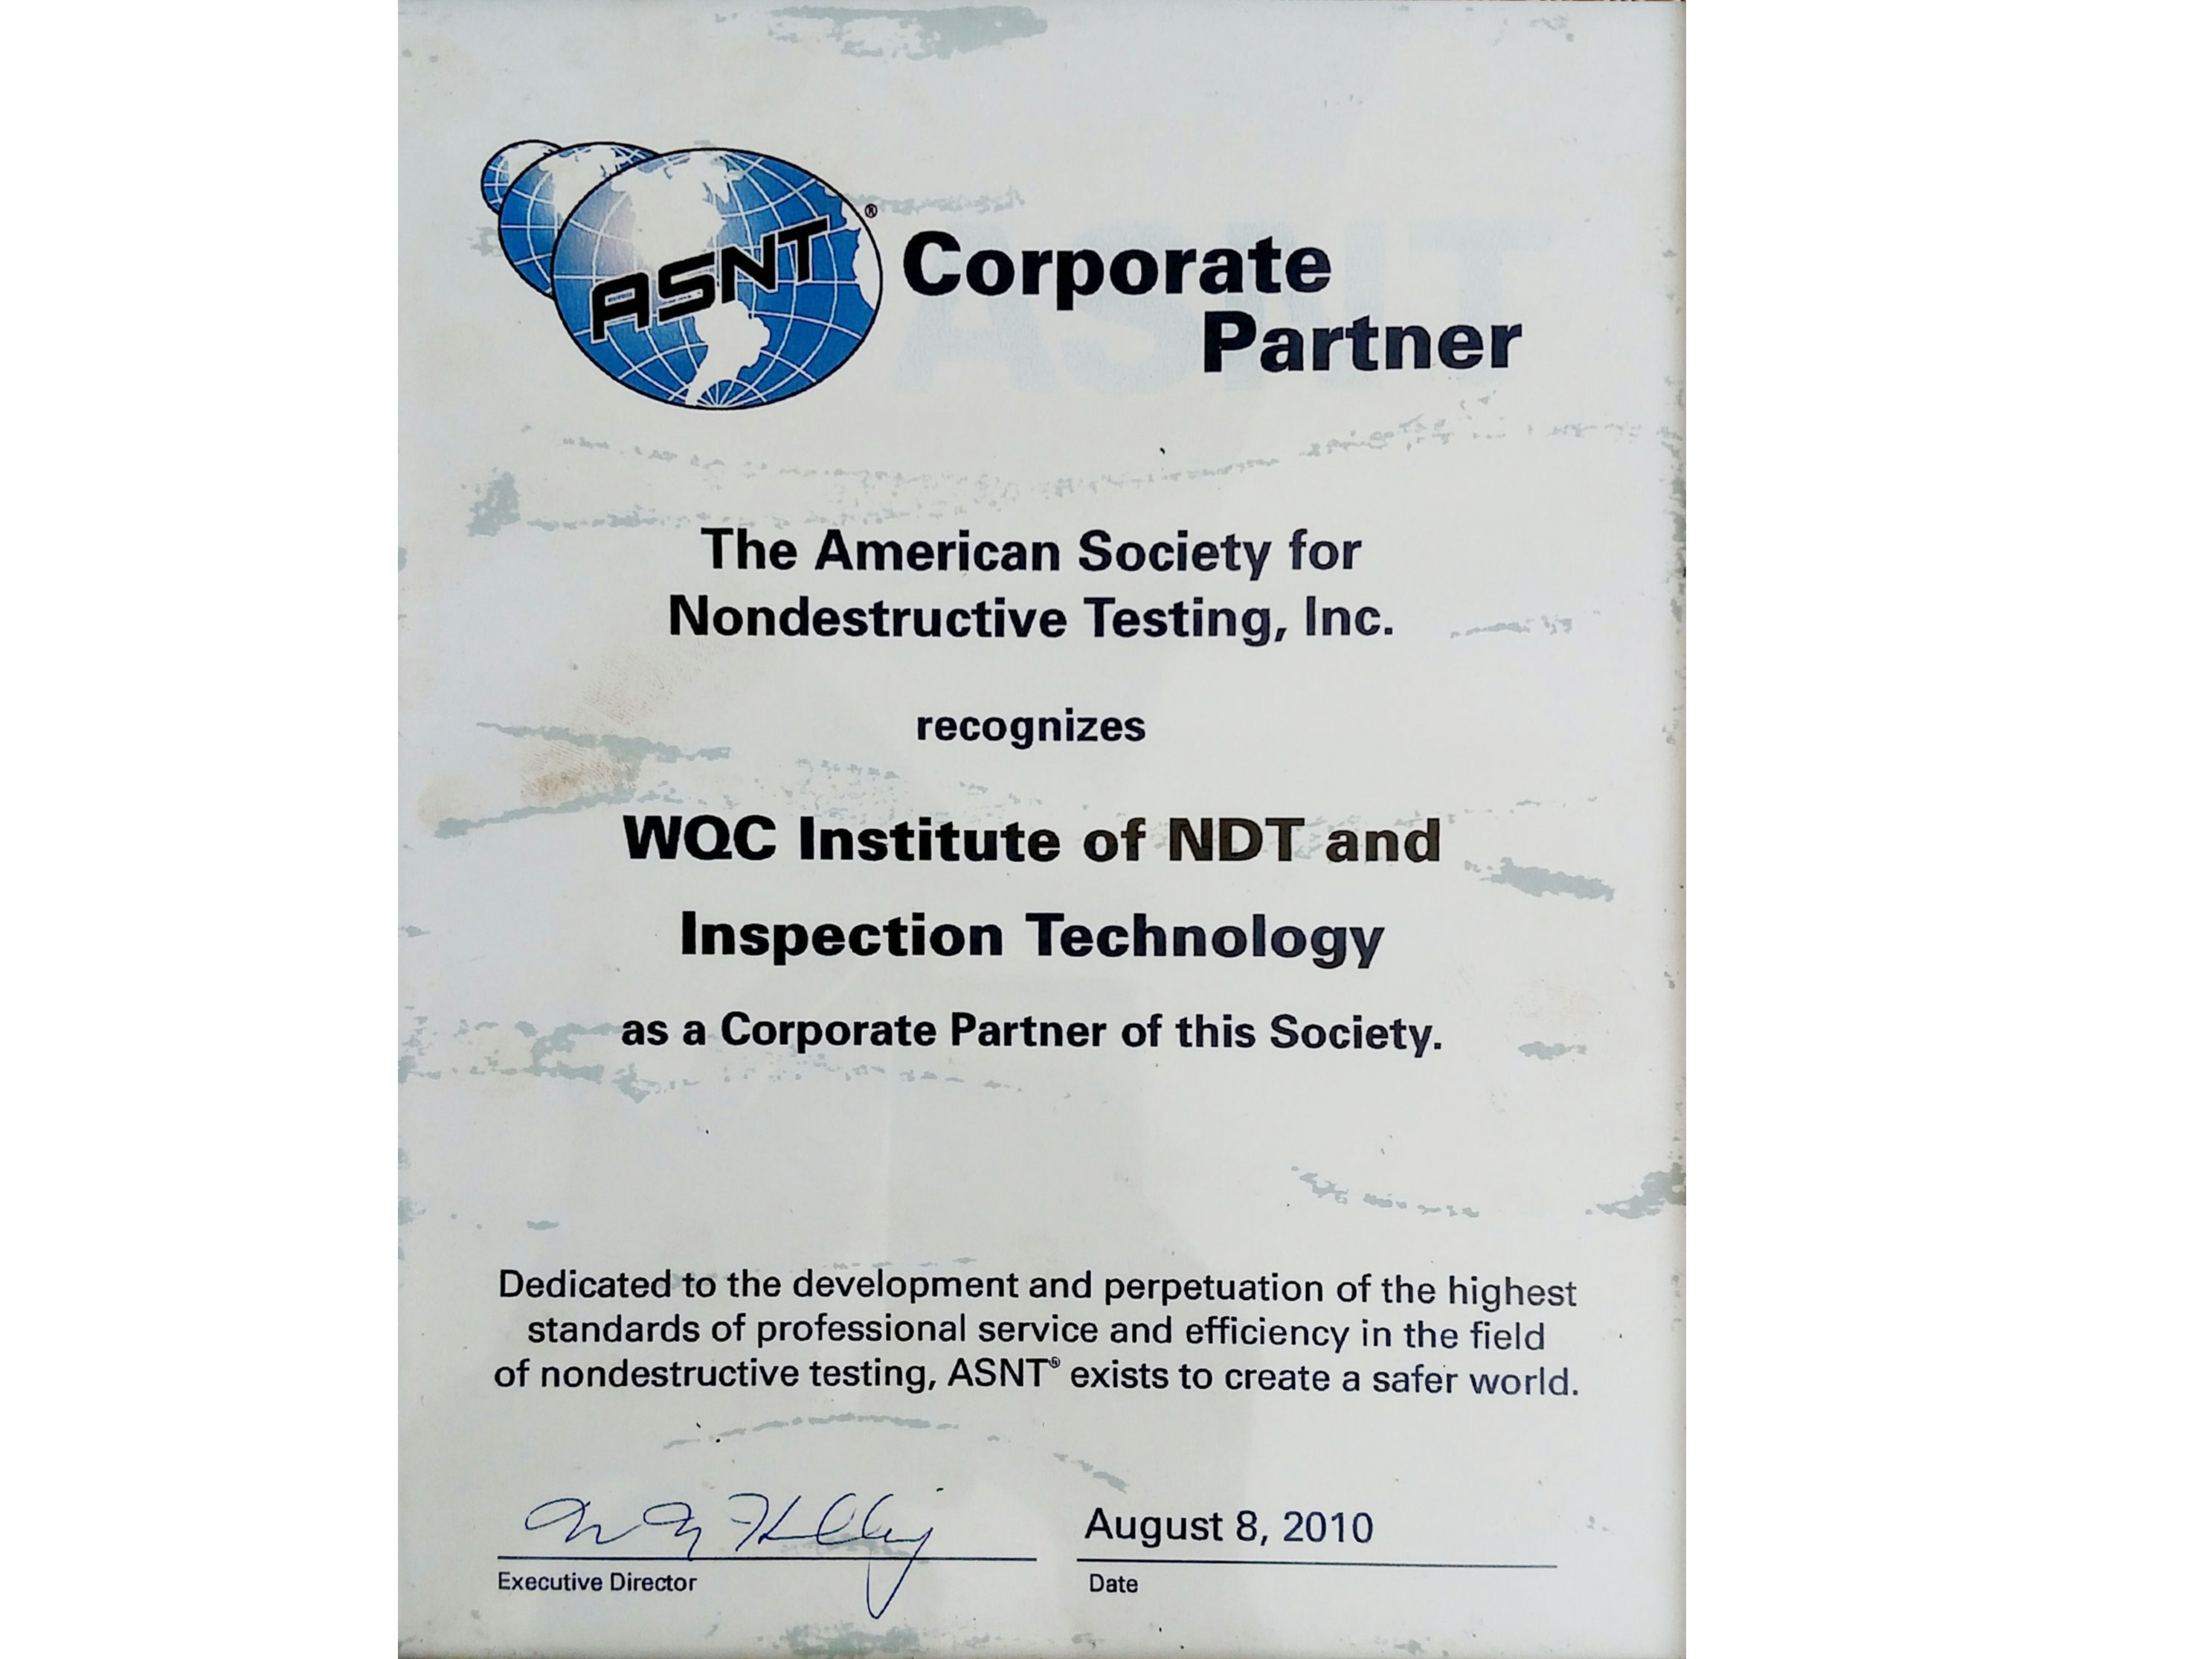 Wqc Institute Of Ndt And Inspection Technology Energy Dais Oil